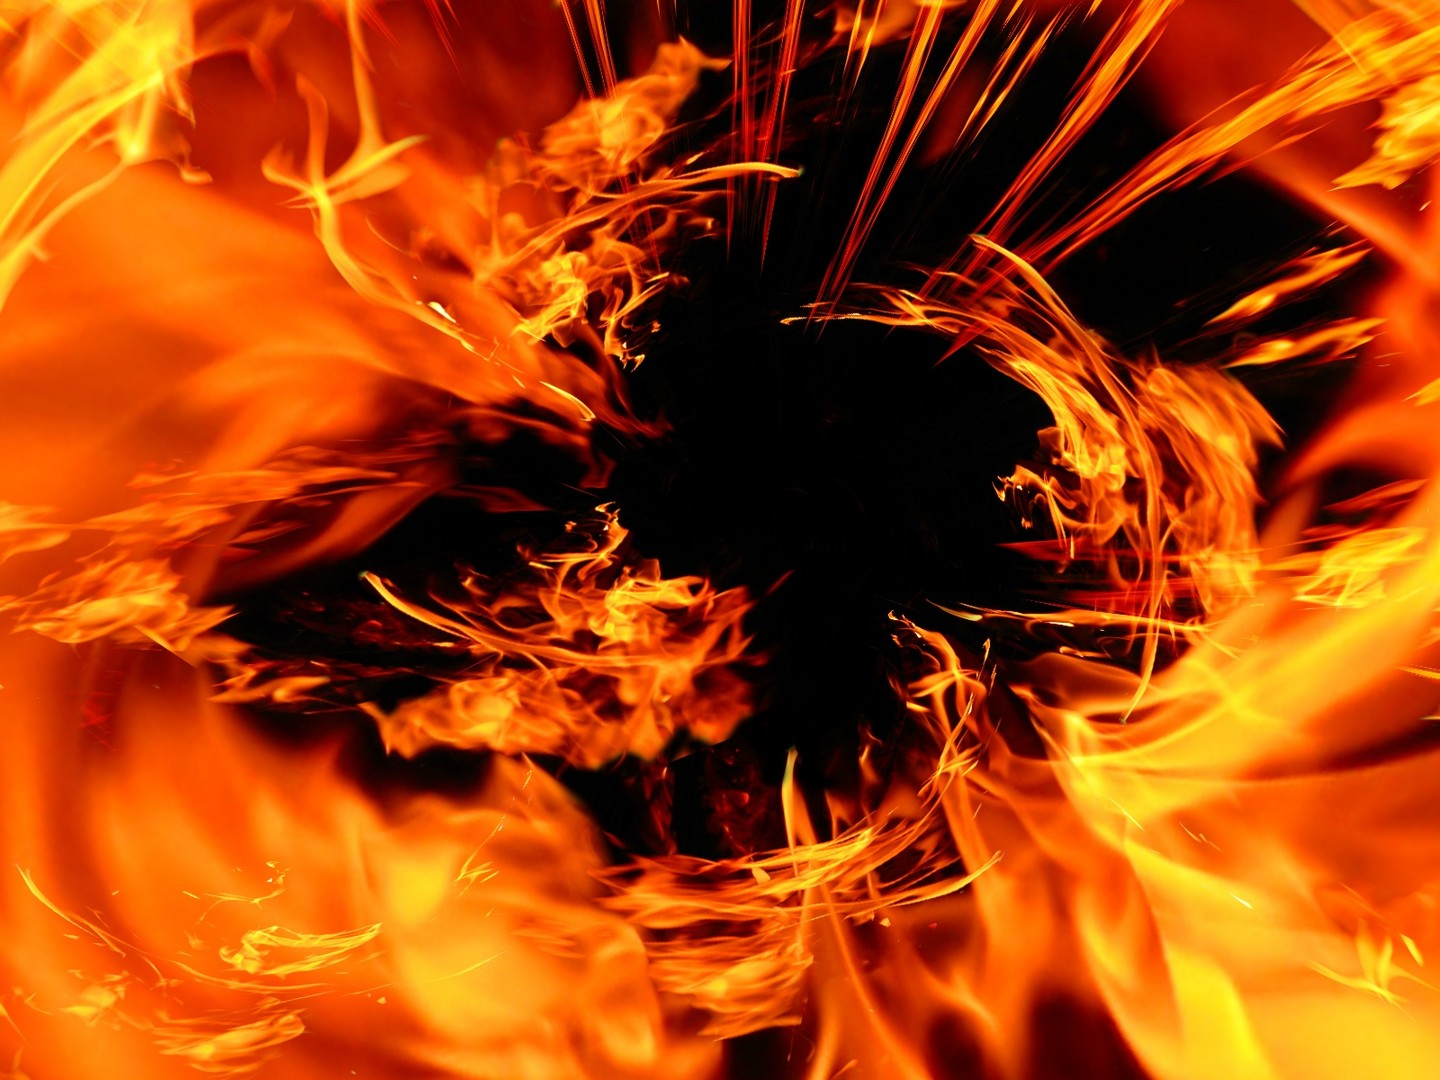 Free Download Cool Fire Wallpapers 500 Collection Hd